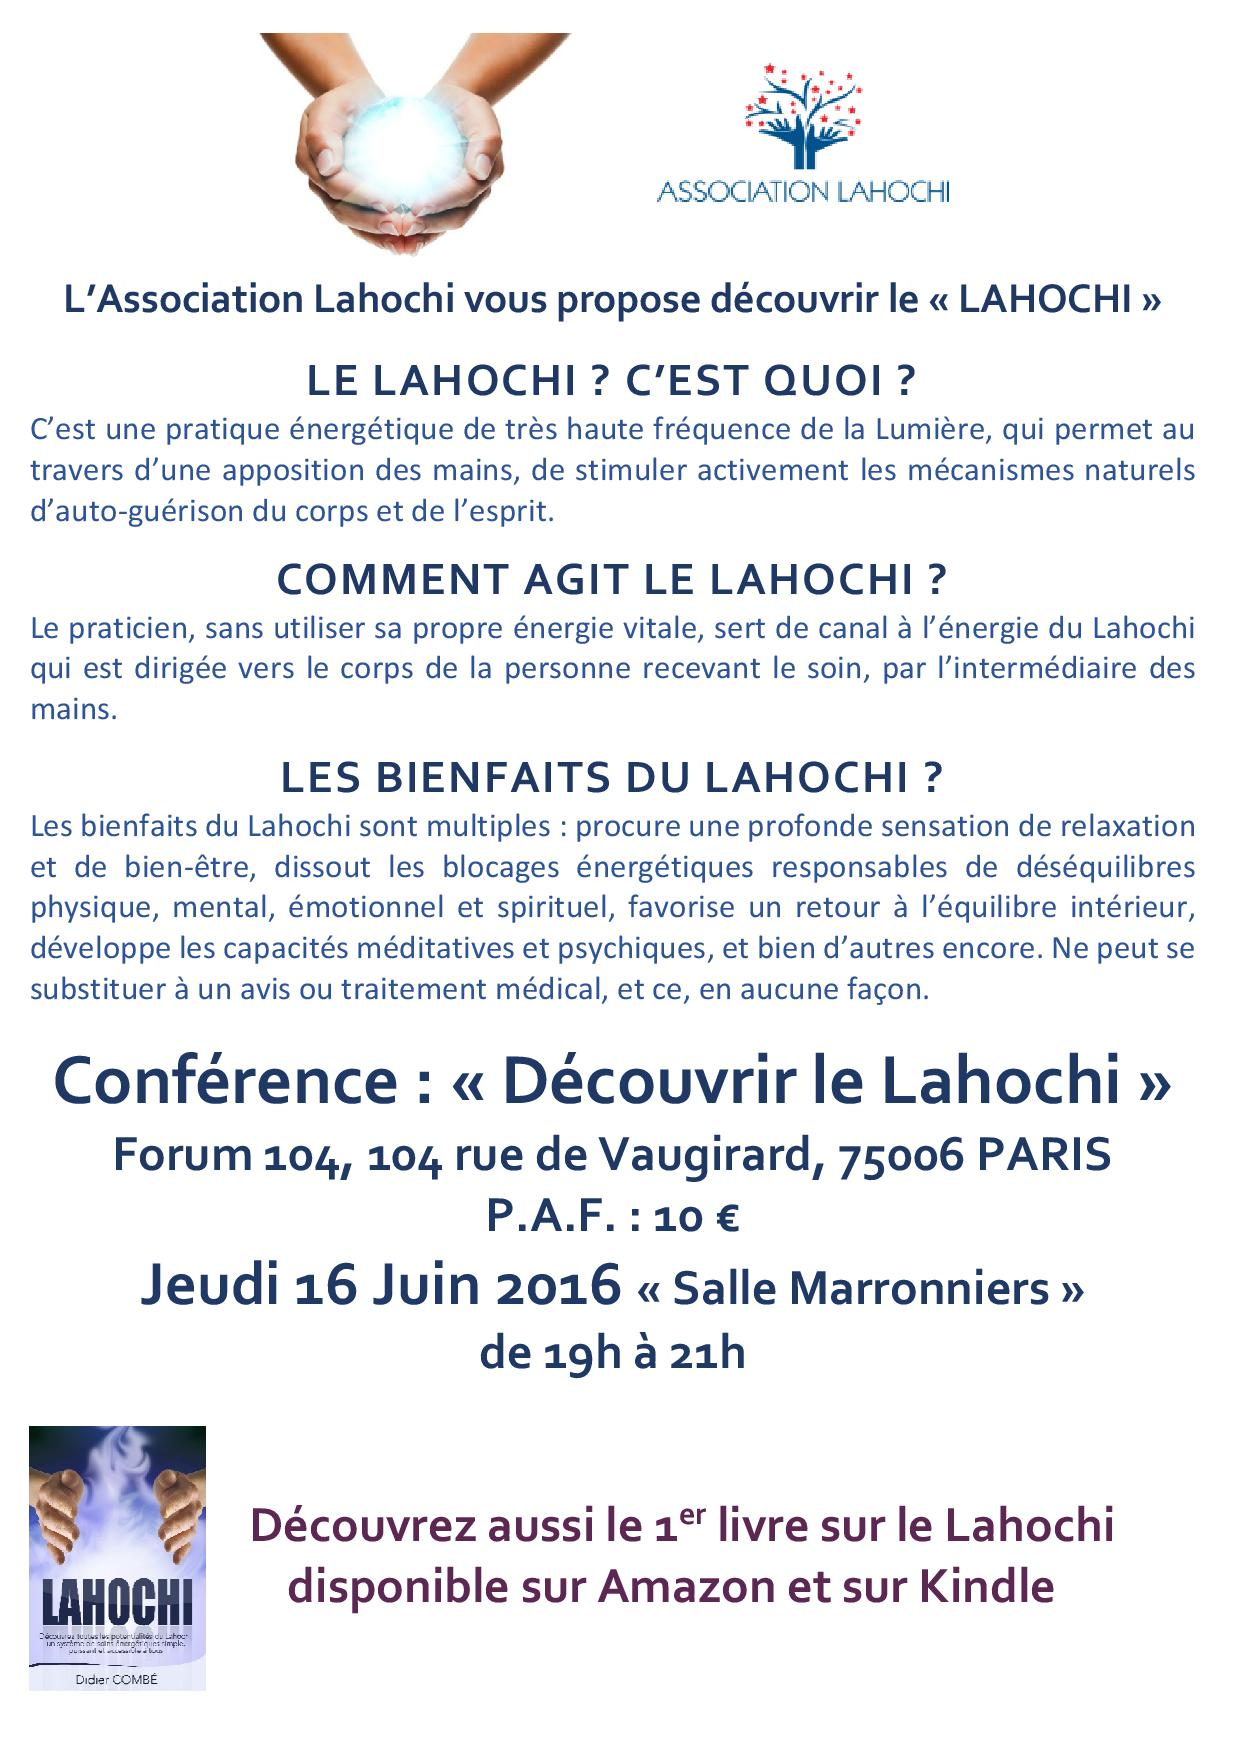 Affiche Association LAHOCHI - Forum 104 - 16062016